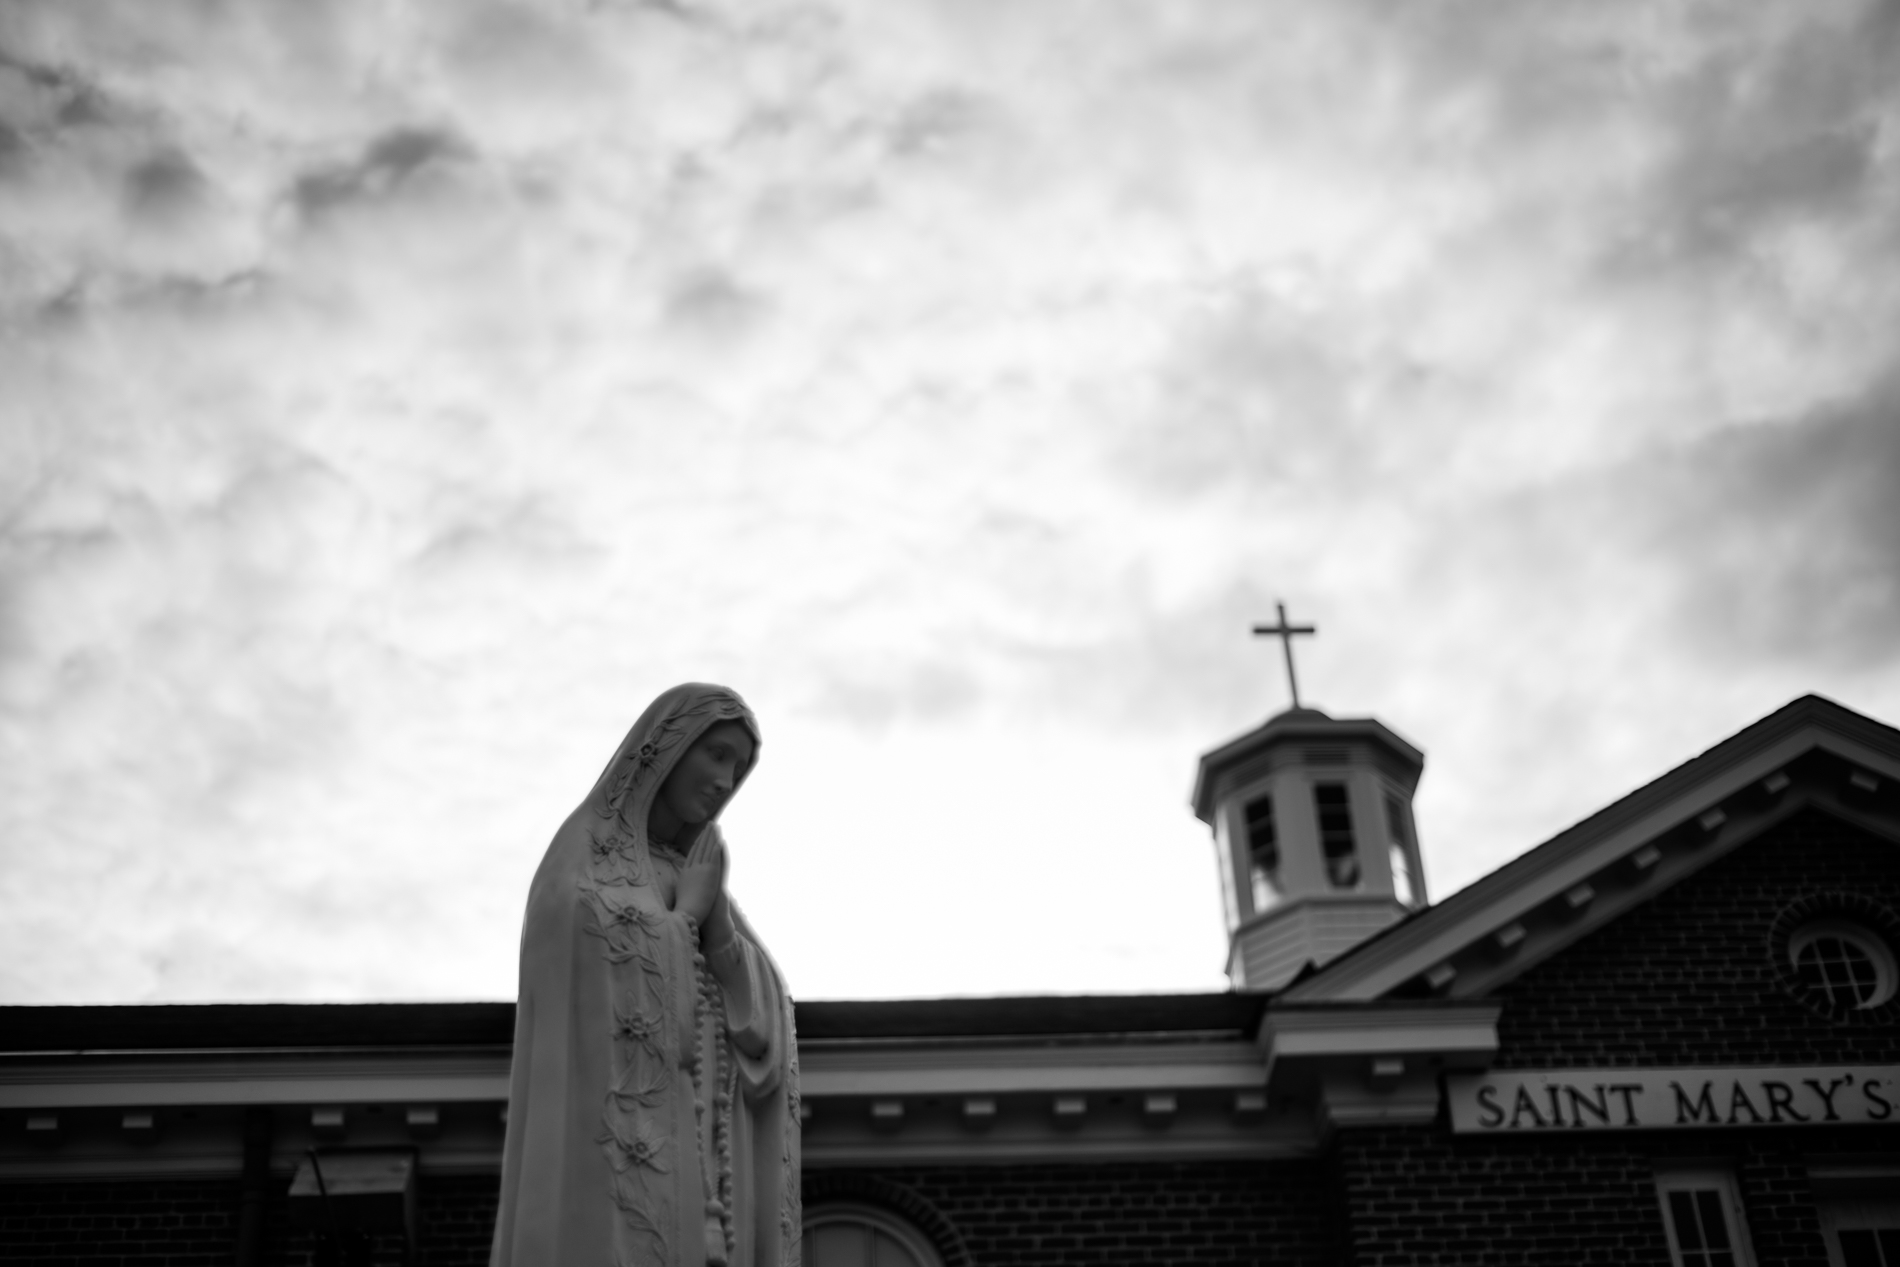 Saint Mary's in Annapolis